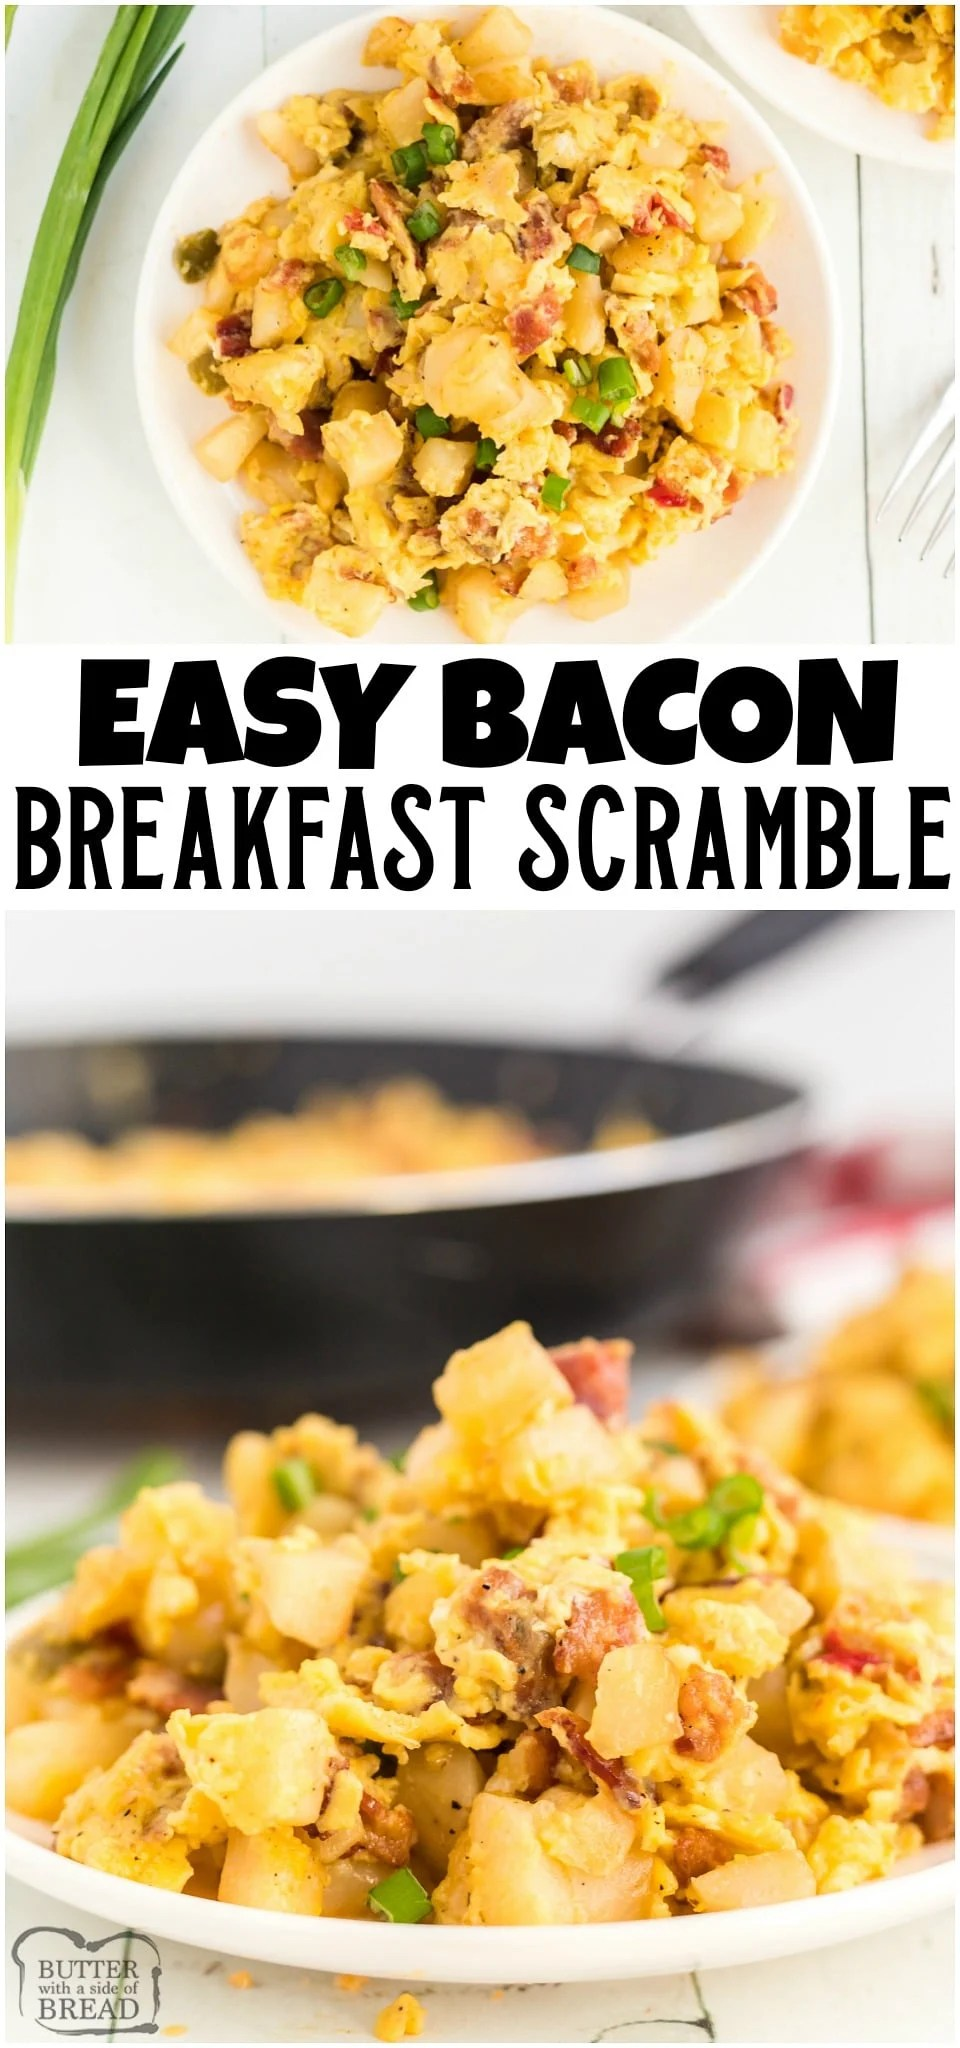 Bacon Breakfast scramble is an easy skillet breakfast casserole recipe everyone enjoys. Protein packed with eggs, bacon and hash brown potatoes, this scramble comes together fast and can feed a crowd!#bacon #eggs #breakfast #scrambled #protein #morning #recipe from BUTTER WITH A SIDE OF BREAD